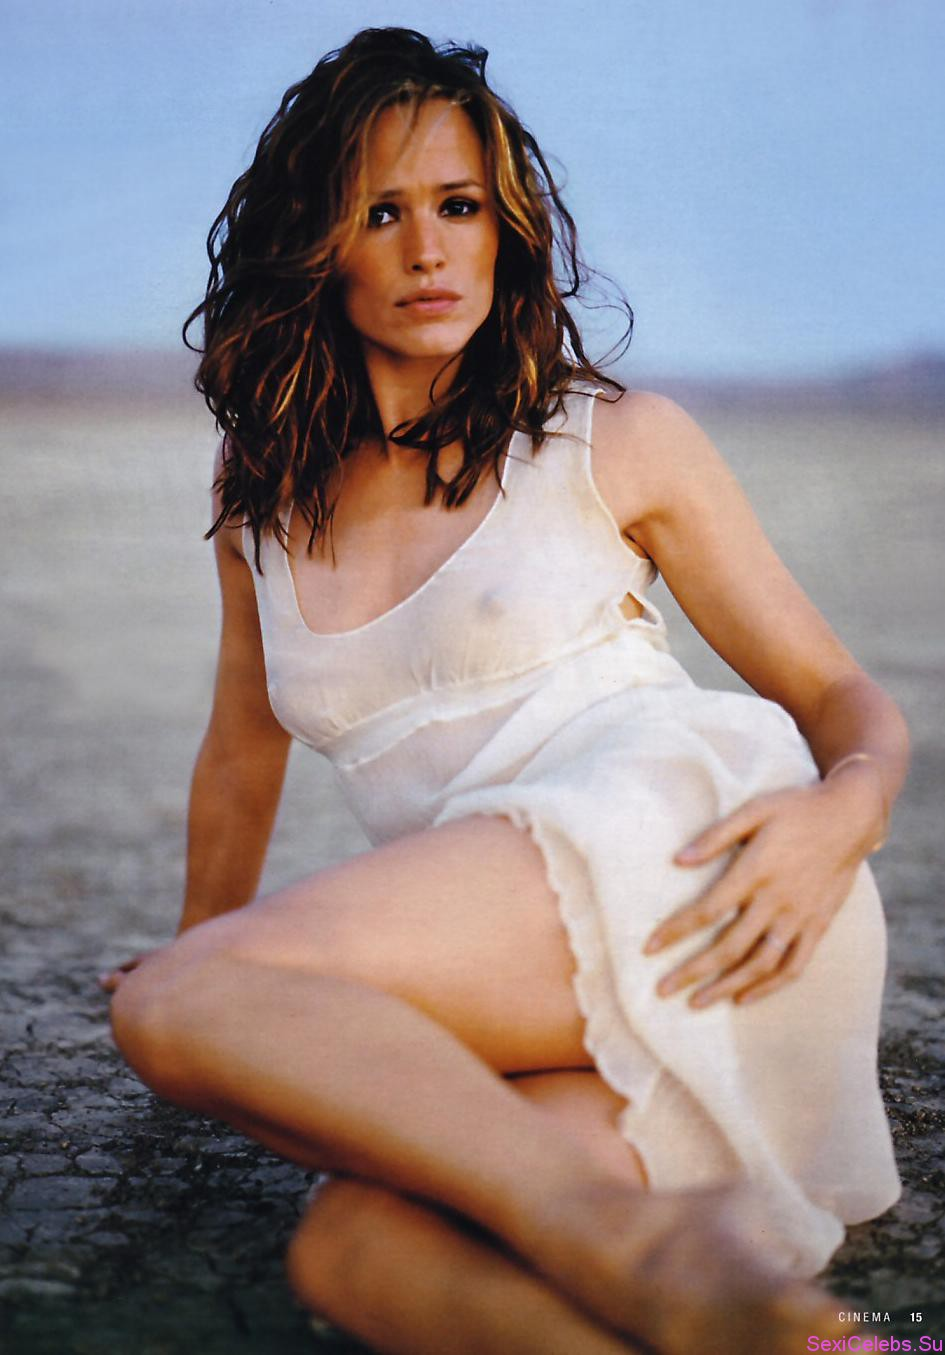 Here not Hot nude pics of jennifer garner having sex the